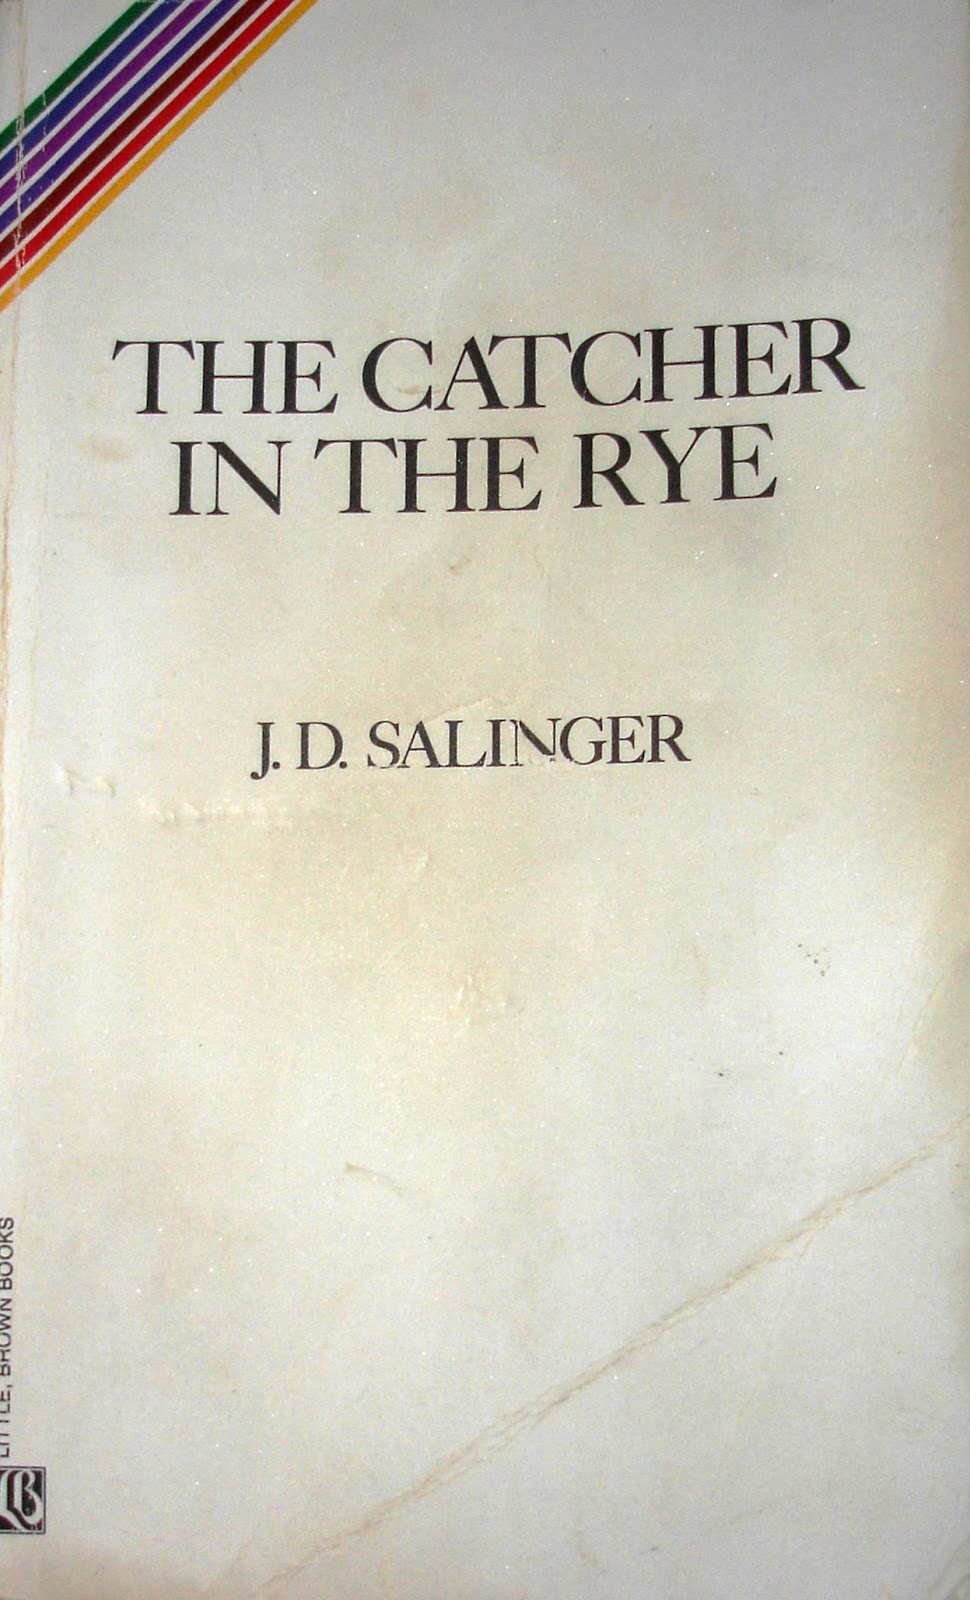 the controversial character of holden caulfield in the catcher in the rye by j d salinger